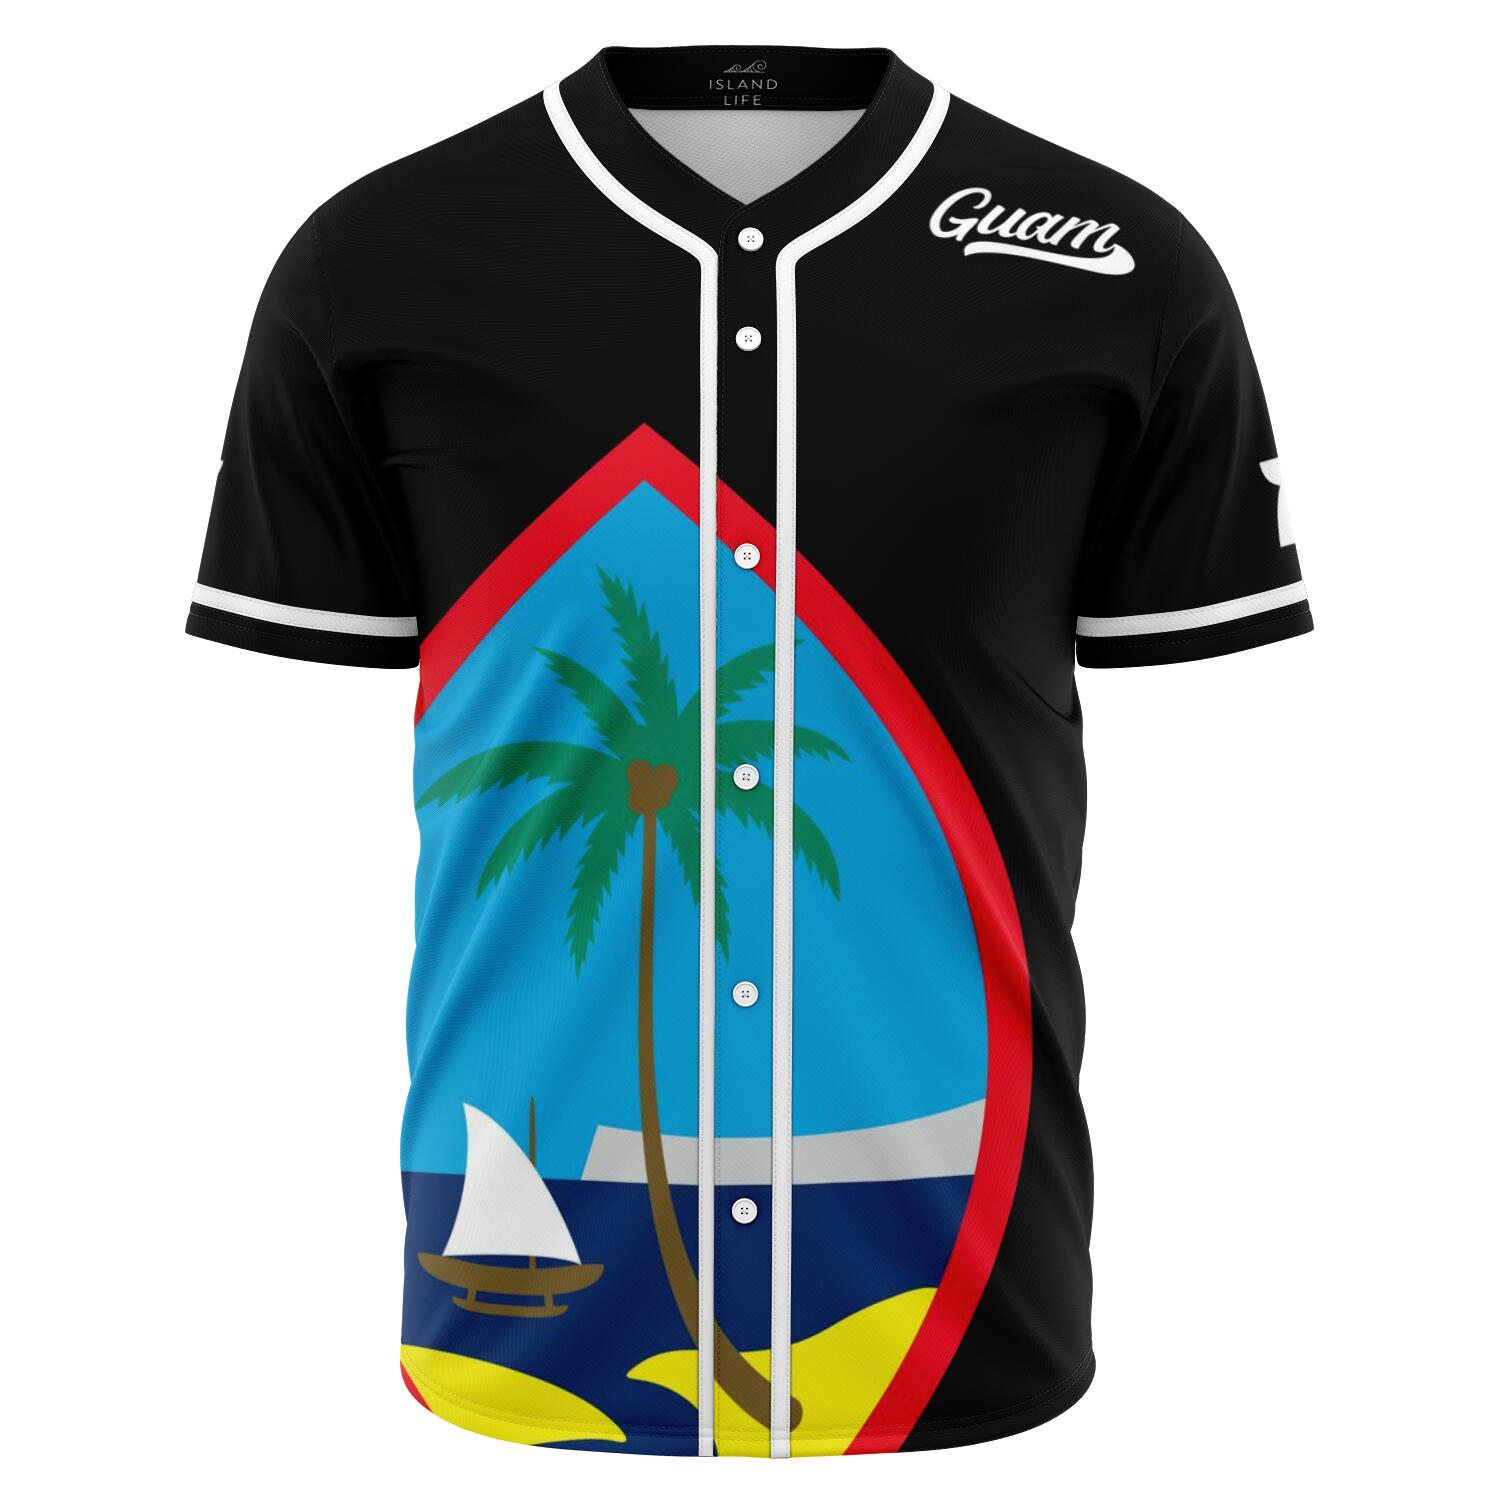 Guam Seal Black Baseball Jersey